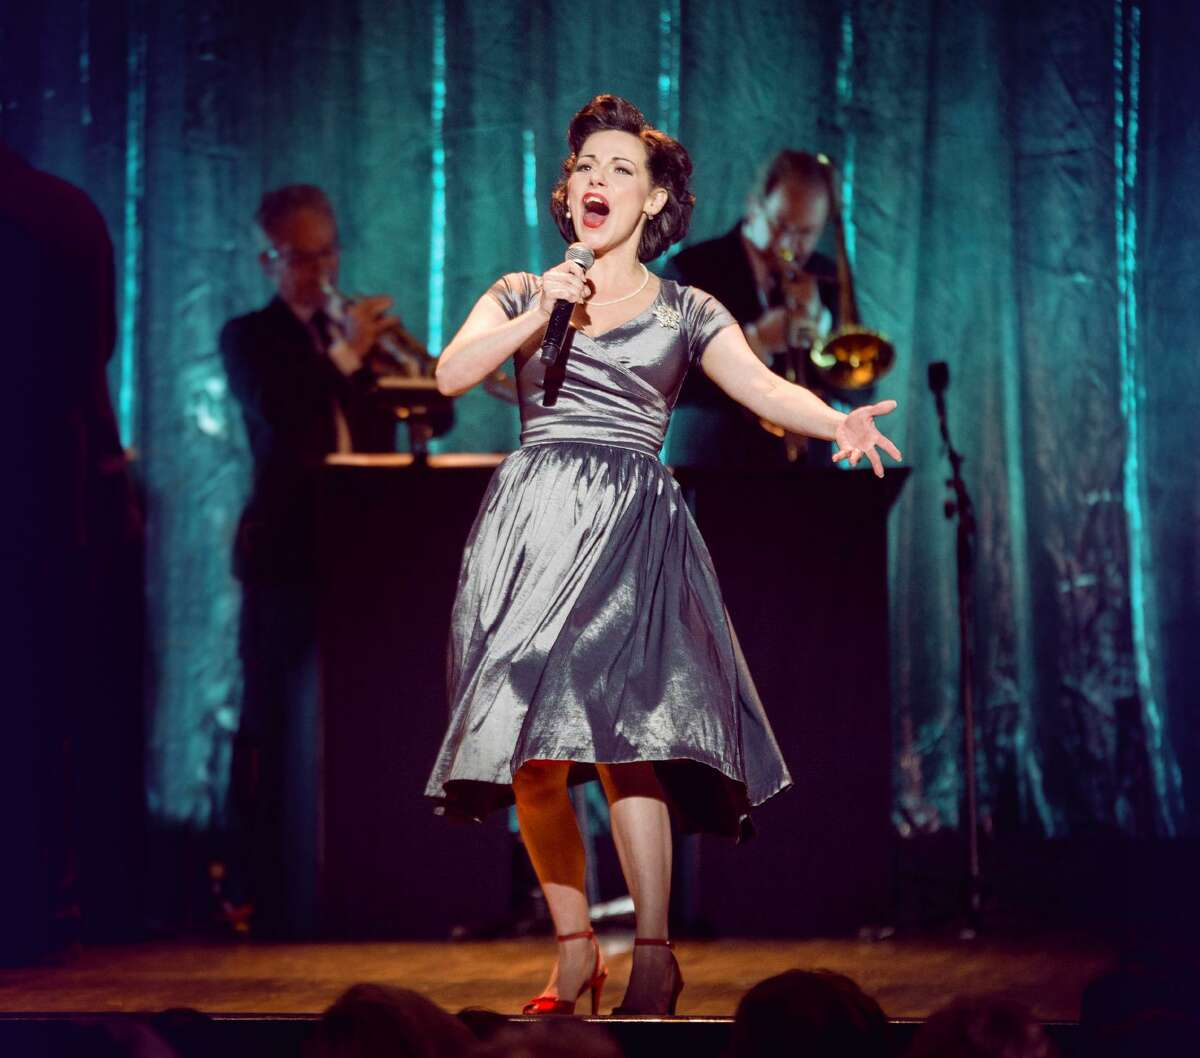 Angela Ingersoll Sings Judy Garland will be held on Monday, Feb. 25 at 7:30 p.m. at The George Theater.